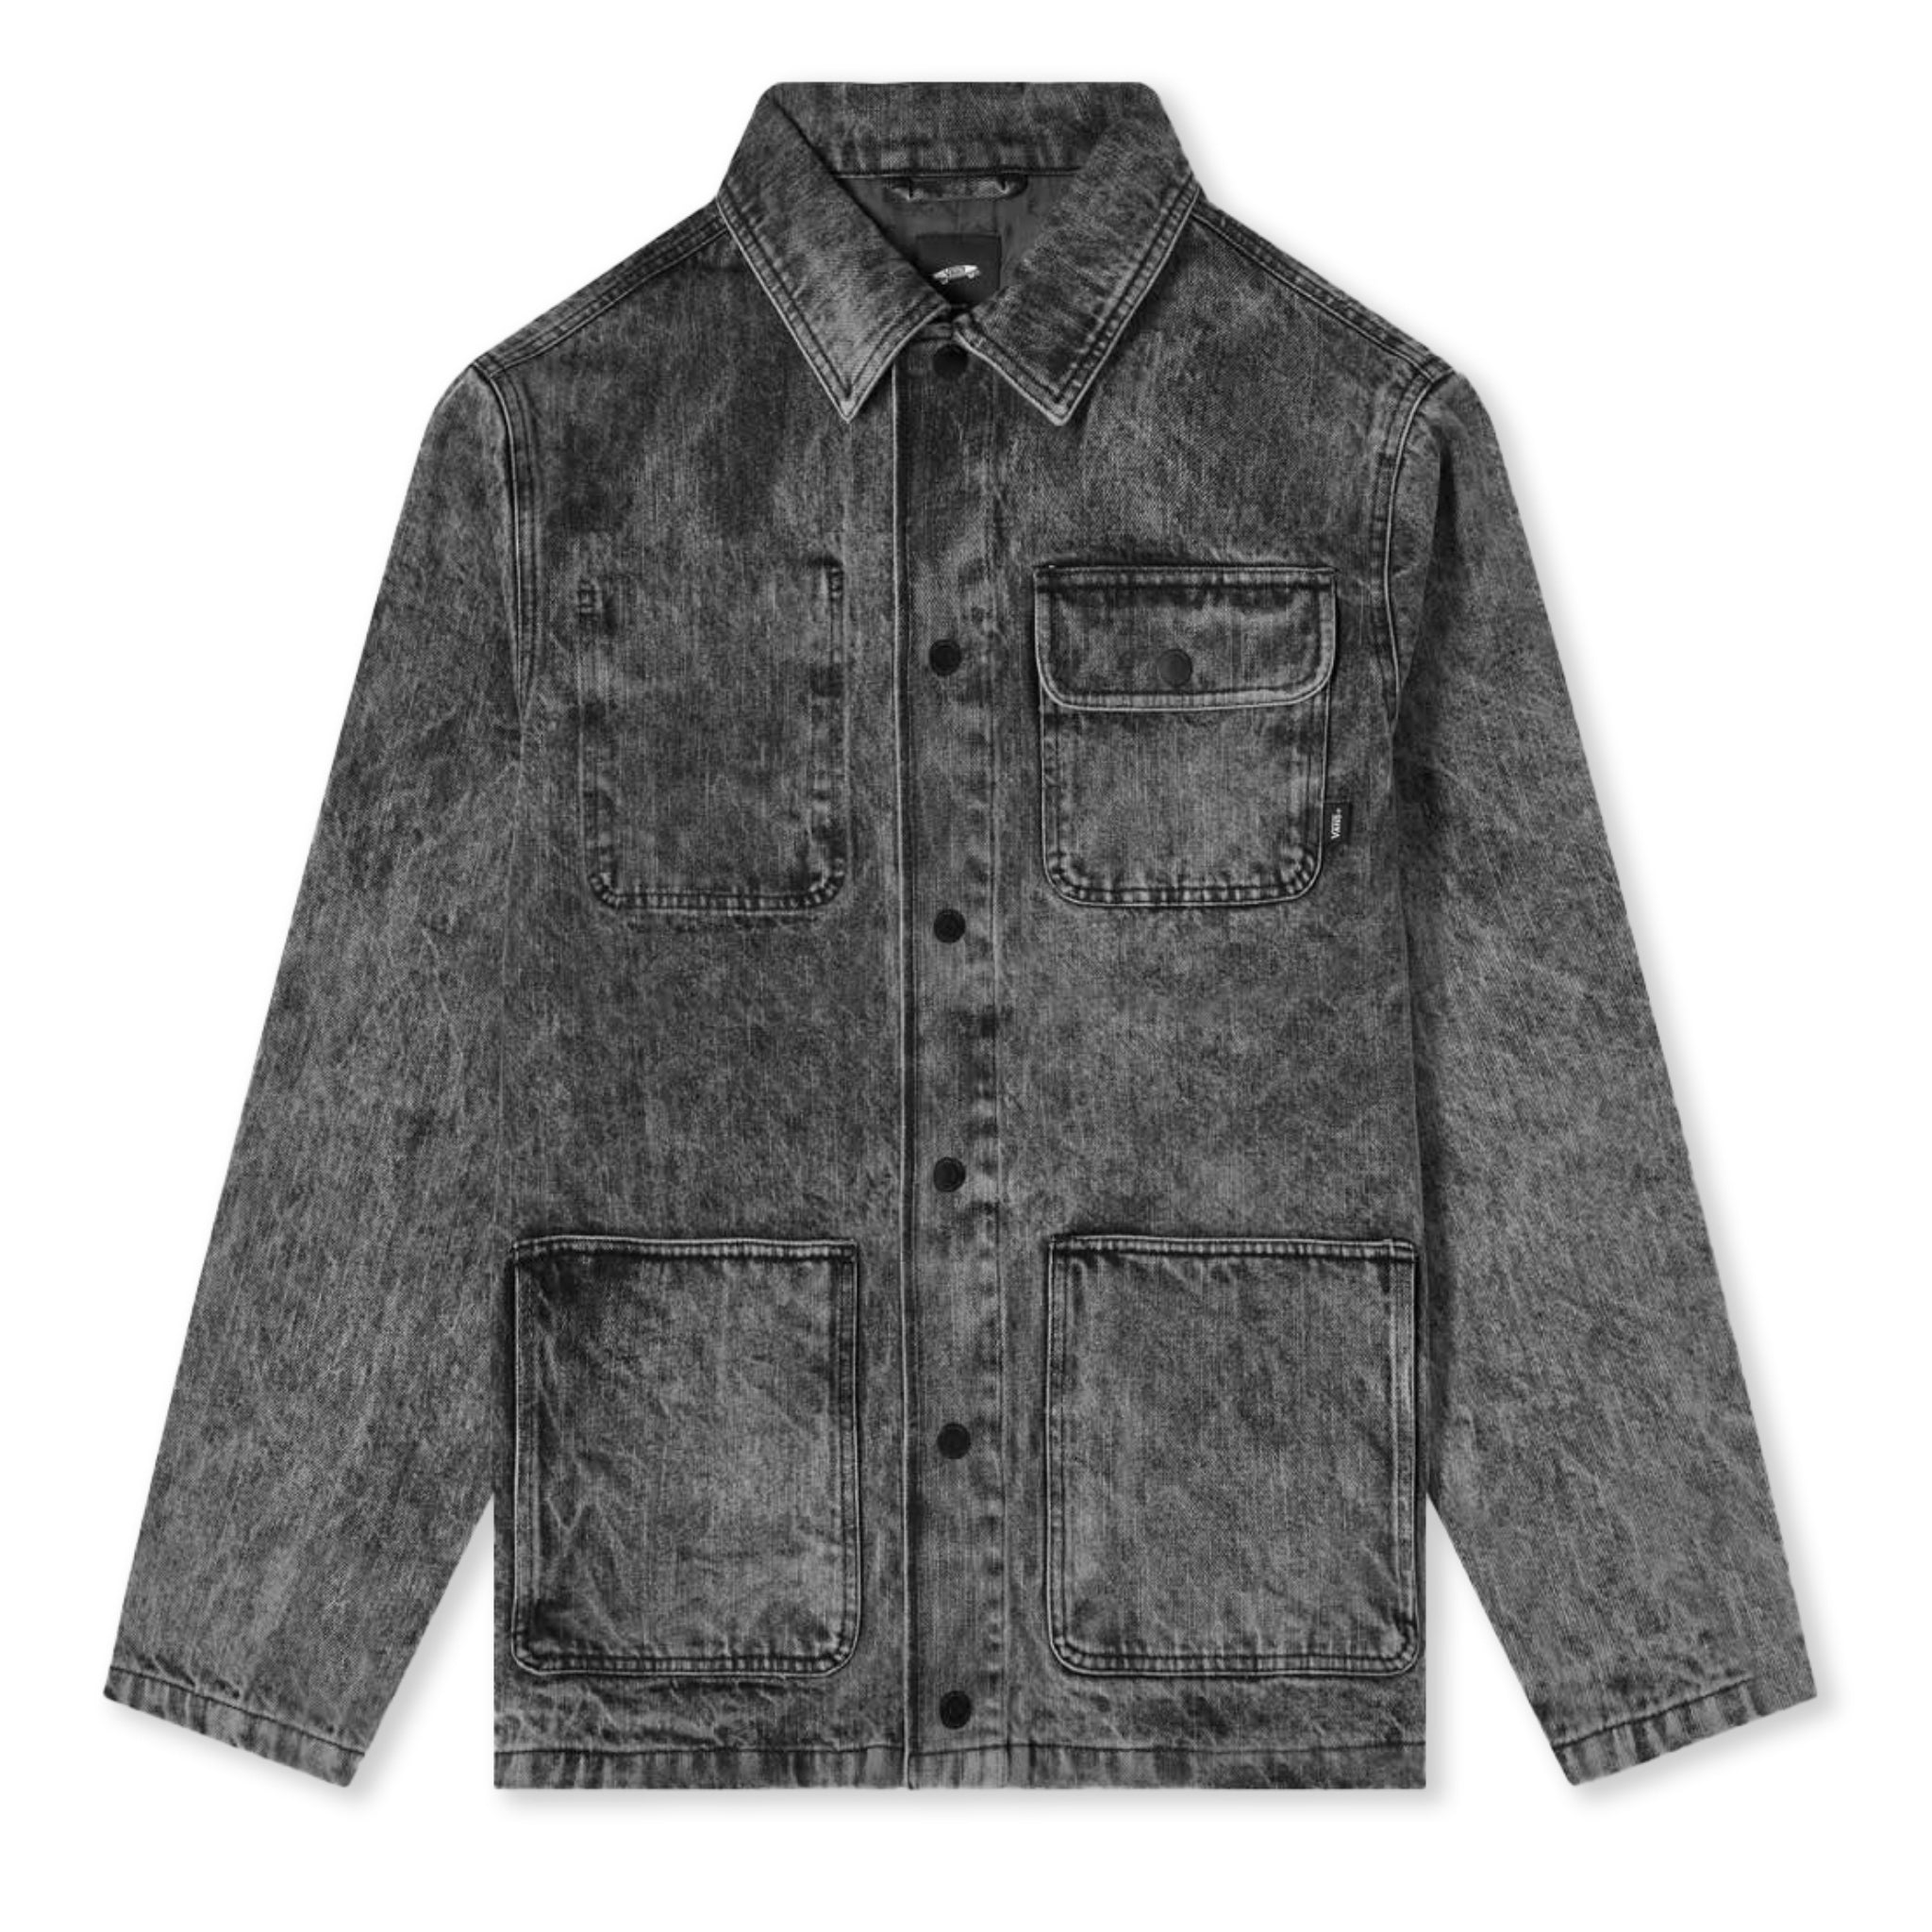 Vans Vault x Jim Goldberg Denim Chore Jacket Black